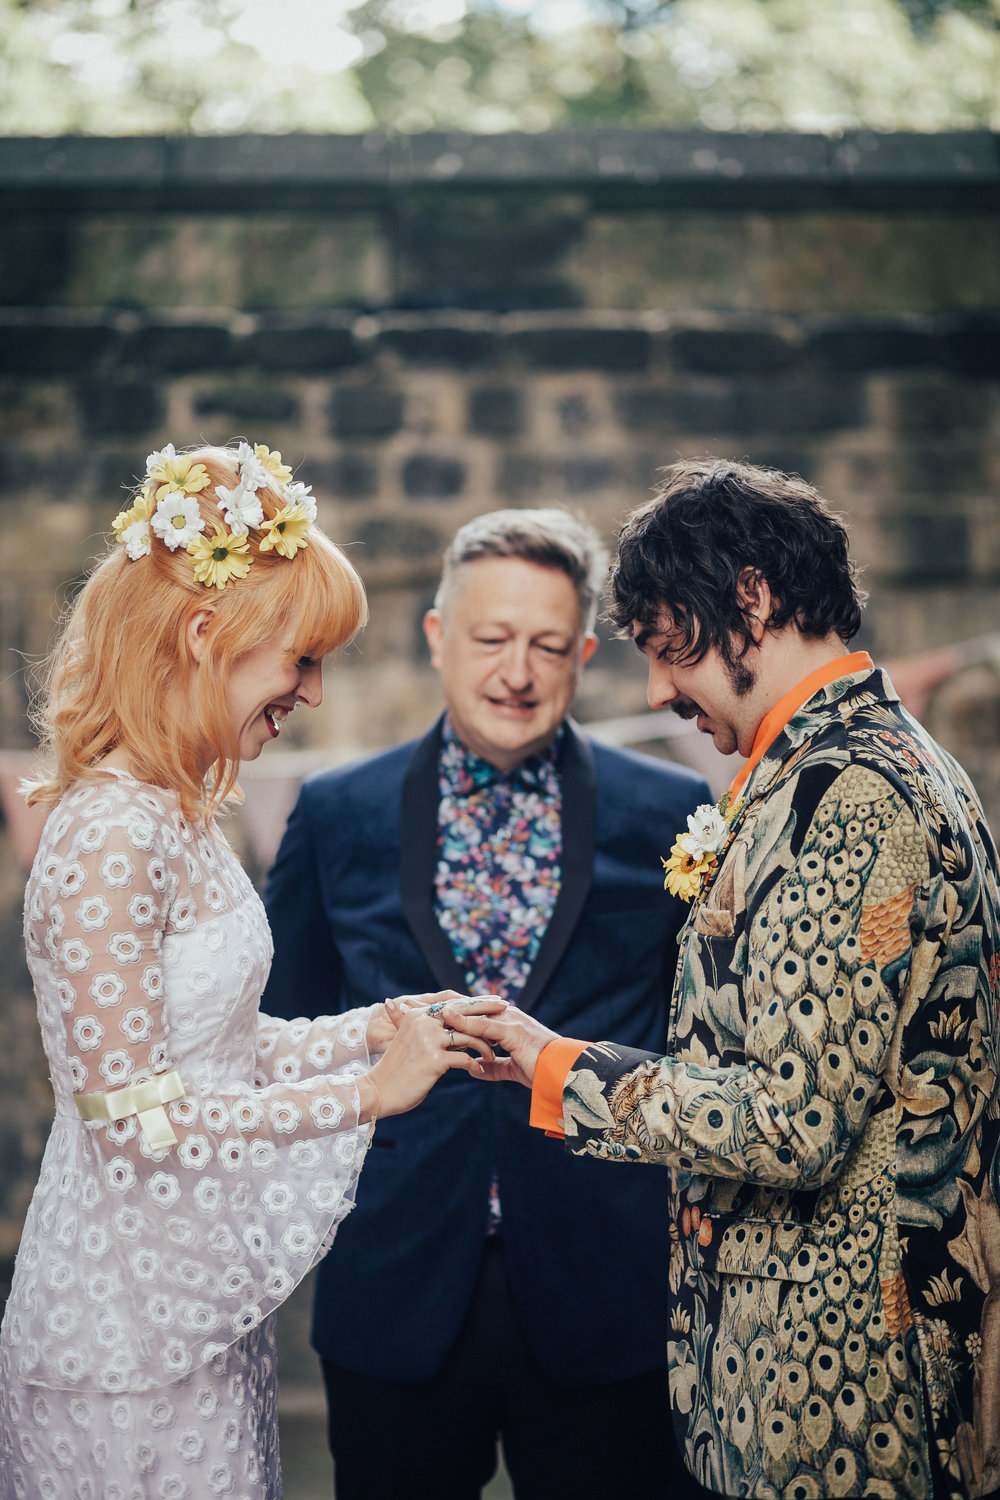 ALTERNATIVE_WEDDING_PHOTOGRAPHY_LEEDS_UK_PJ_PHILLIPS_PHOTOGRAPHY_74.jpg